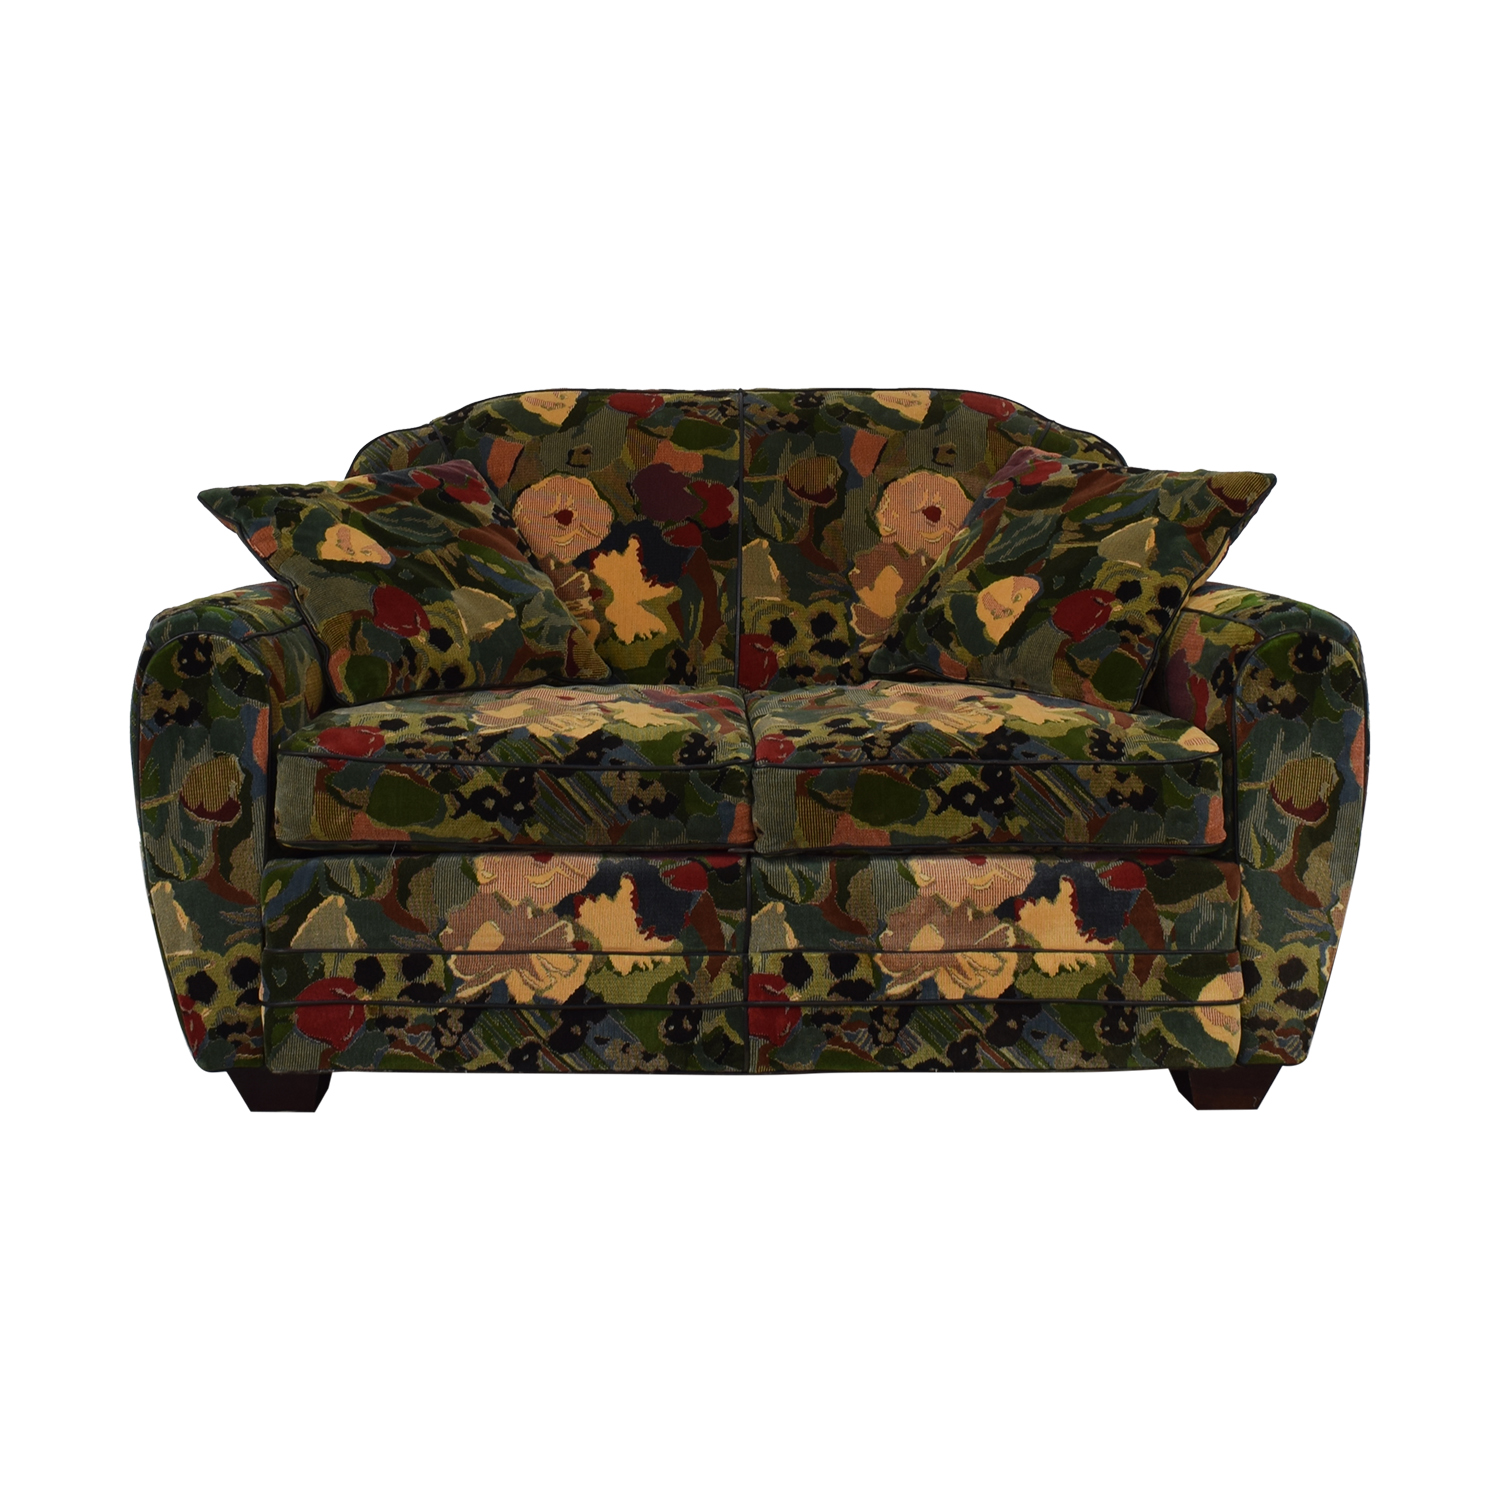 Prime 75 Off Old Hickory Tannery Old Hickory Tannery Floral Loveseat Sofas Theyellowbook Wood Chair Design Ideas Theyellowbookinfo